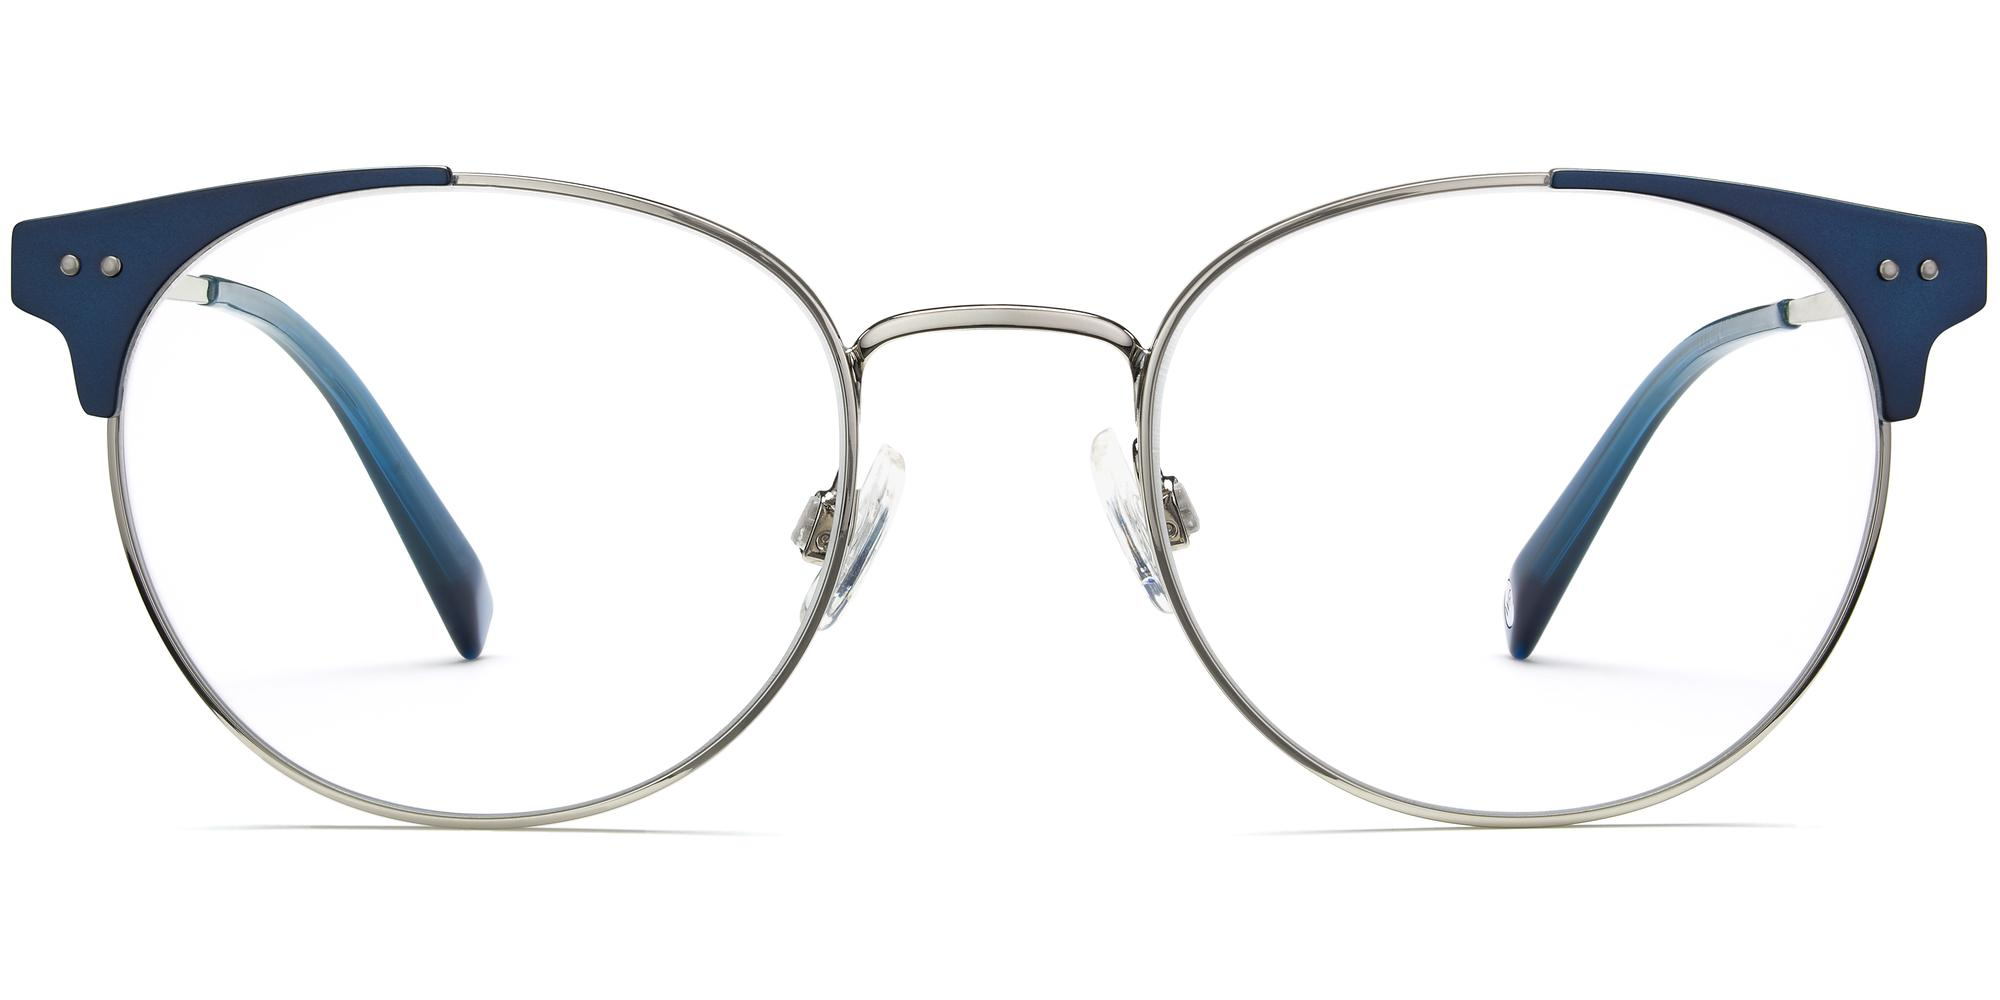 080308b8d9bf9 Townsend m eyeglasses in Polished Silver with Brushed Navy (Rx) | The  Fashionisto